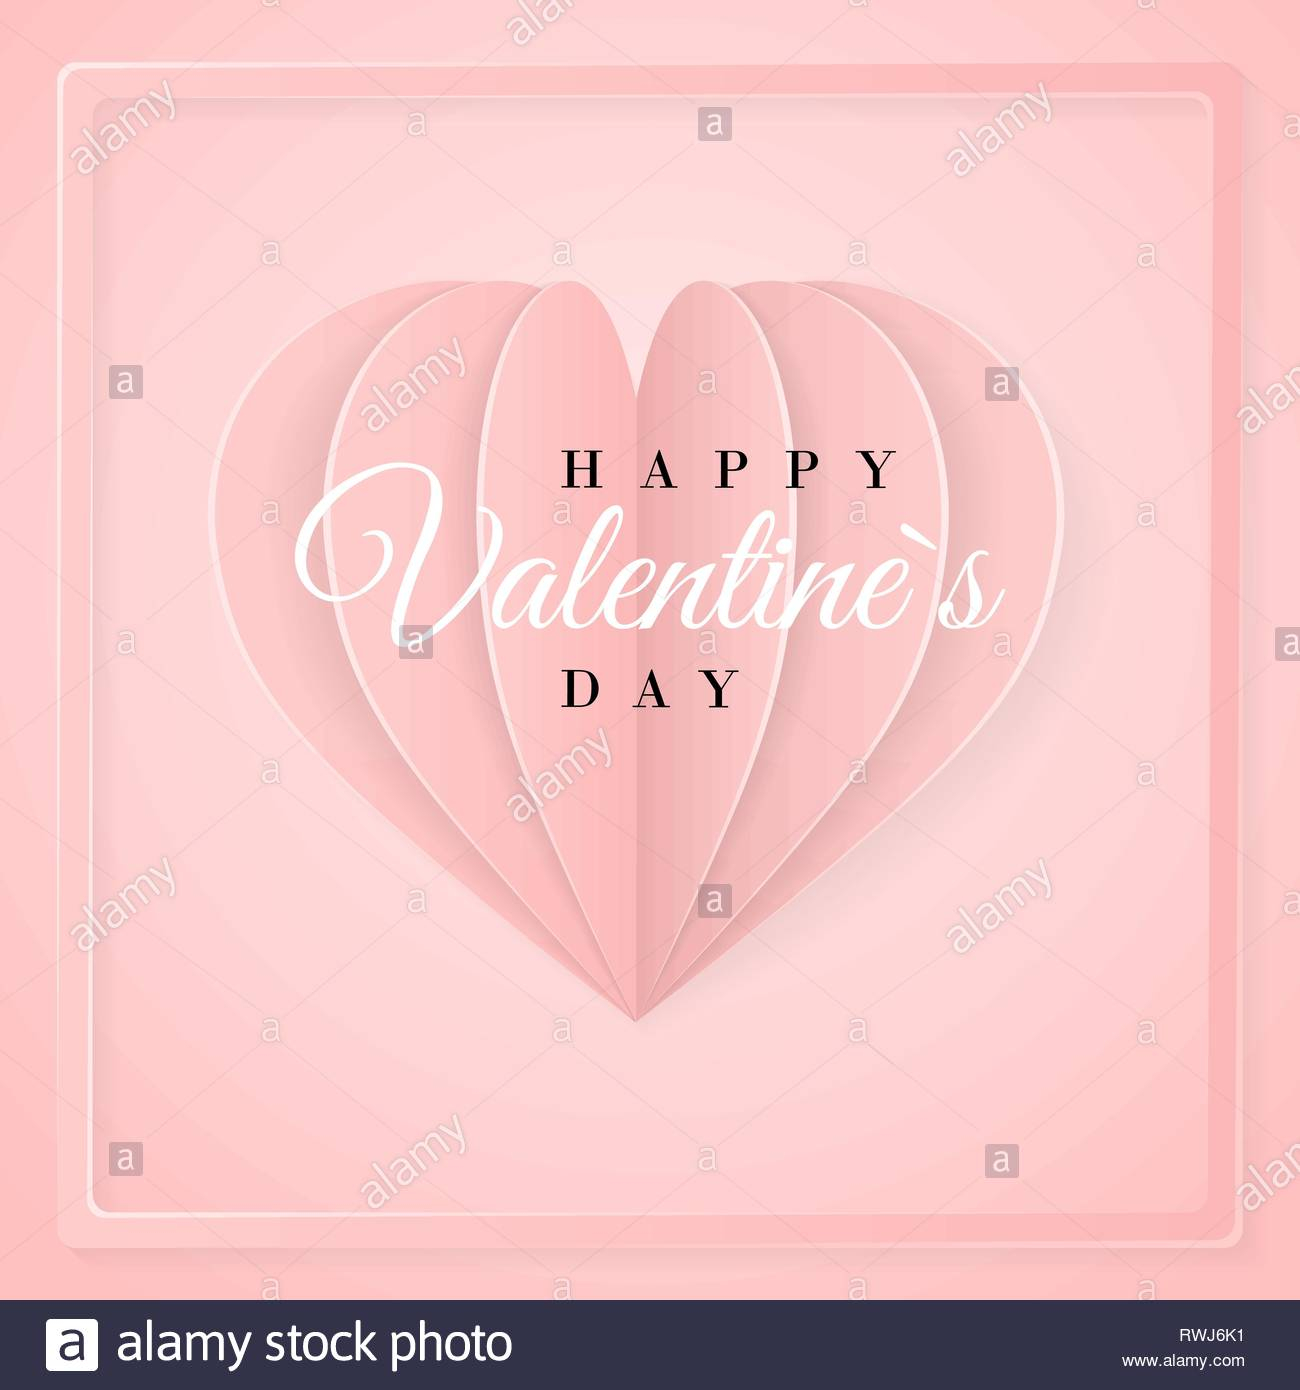 happy valentines day invitation card template with origami paper heart pink background vector illustration RWJ6K1